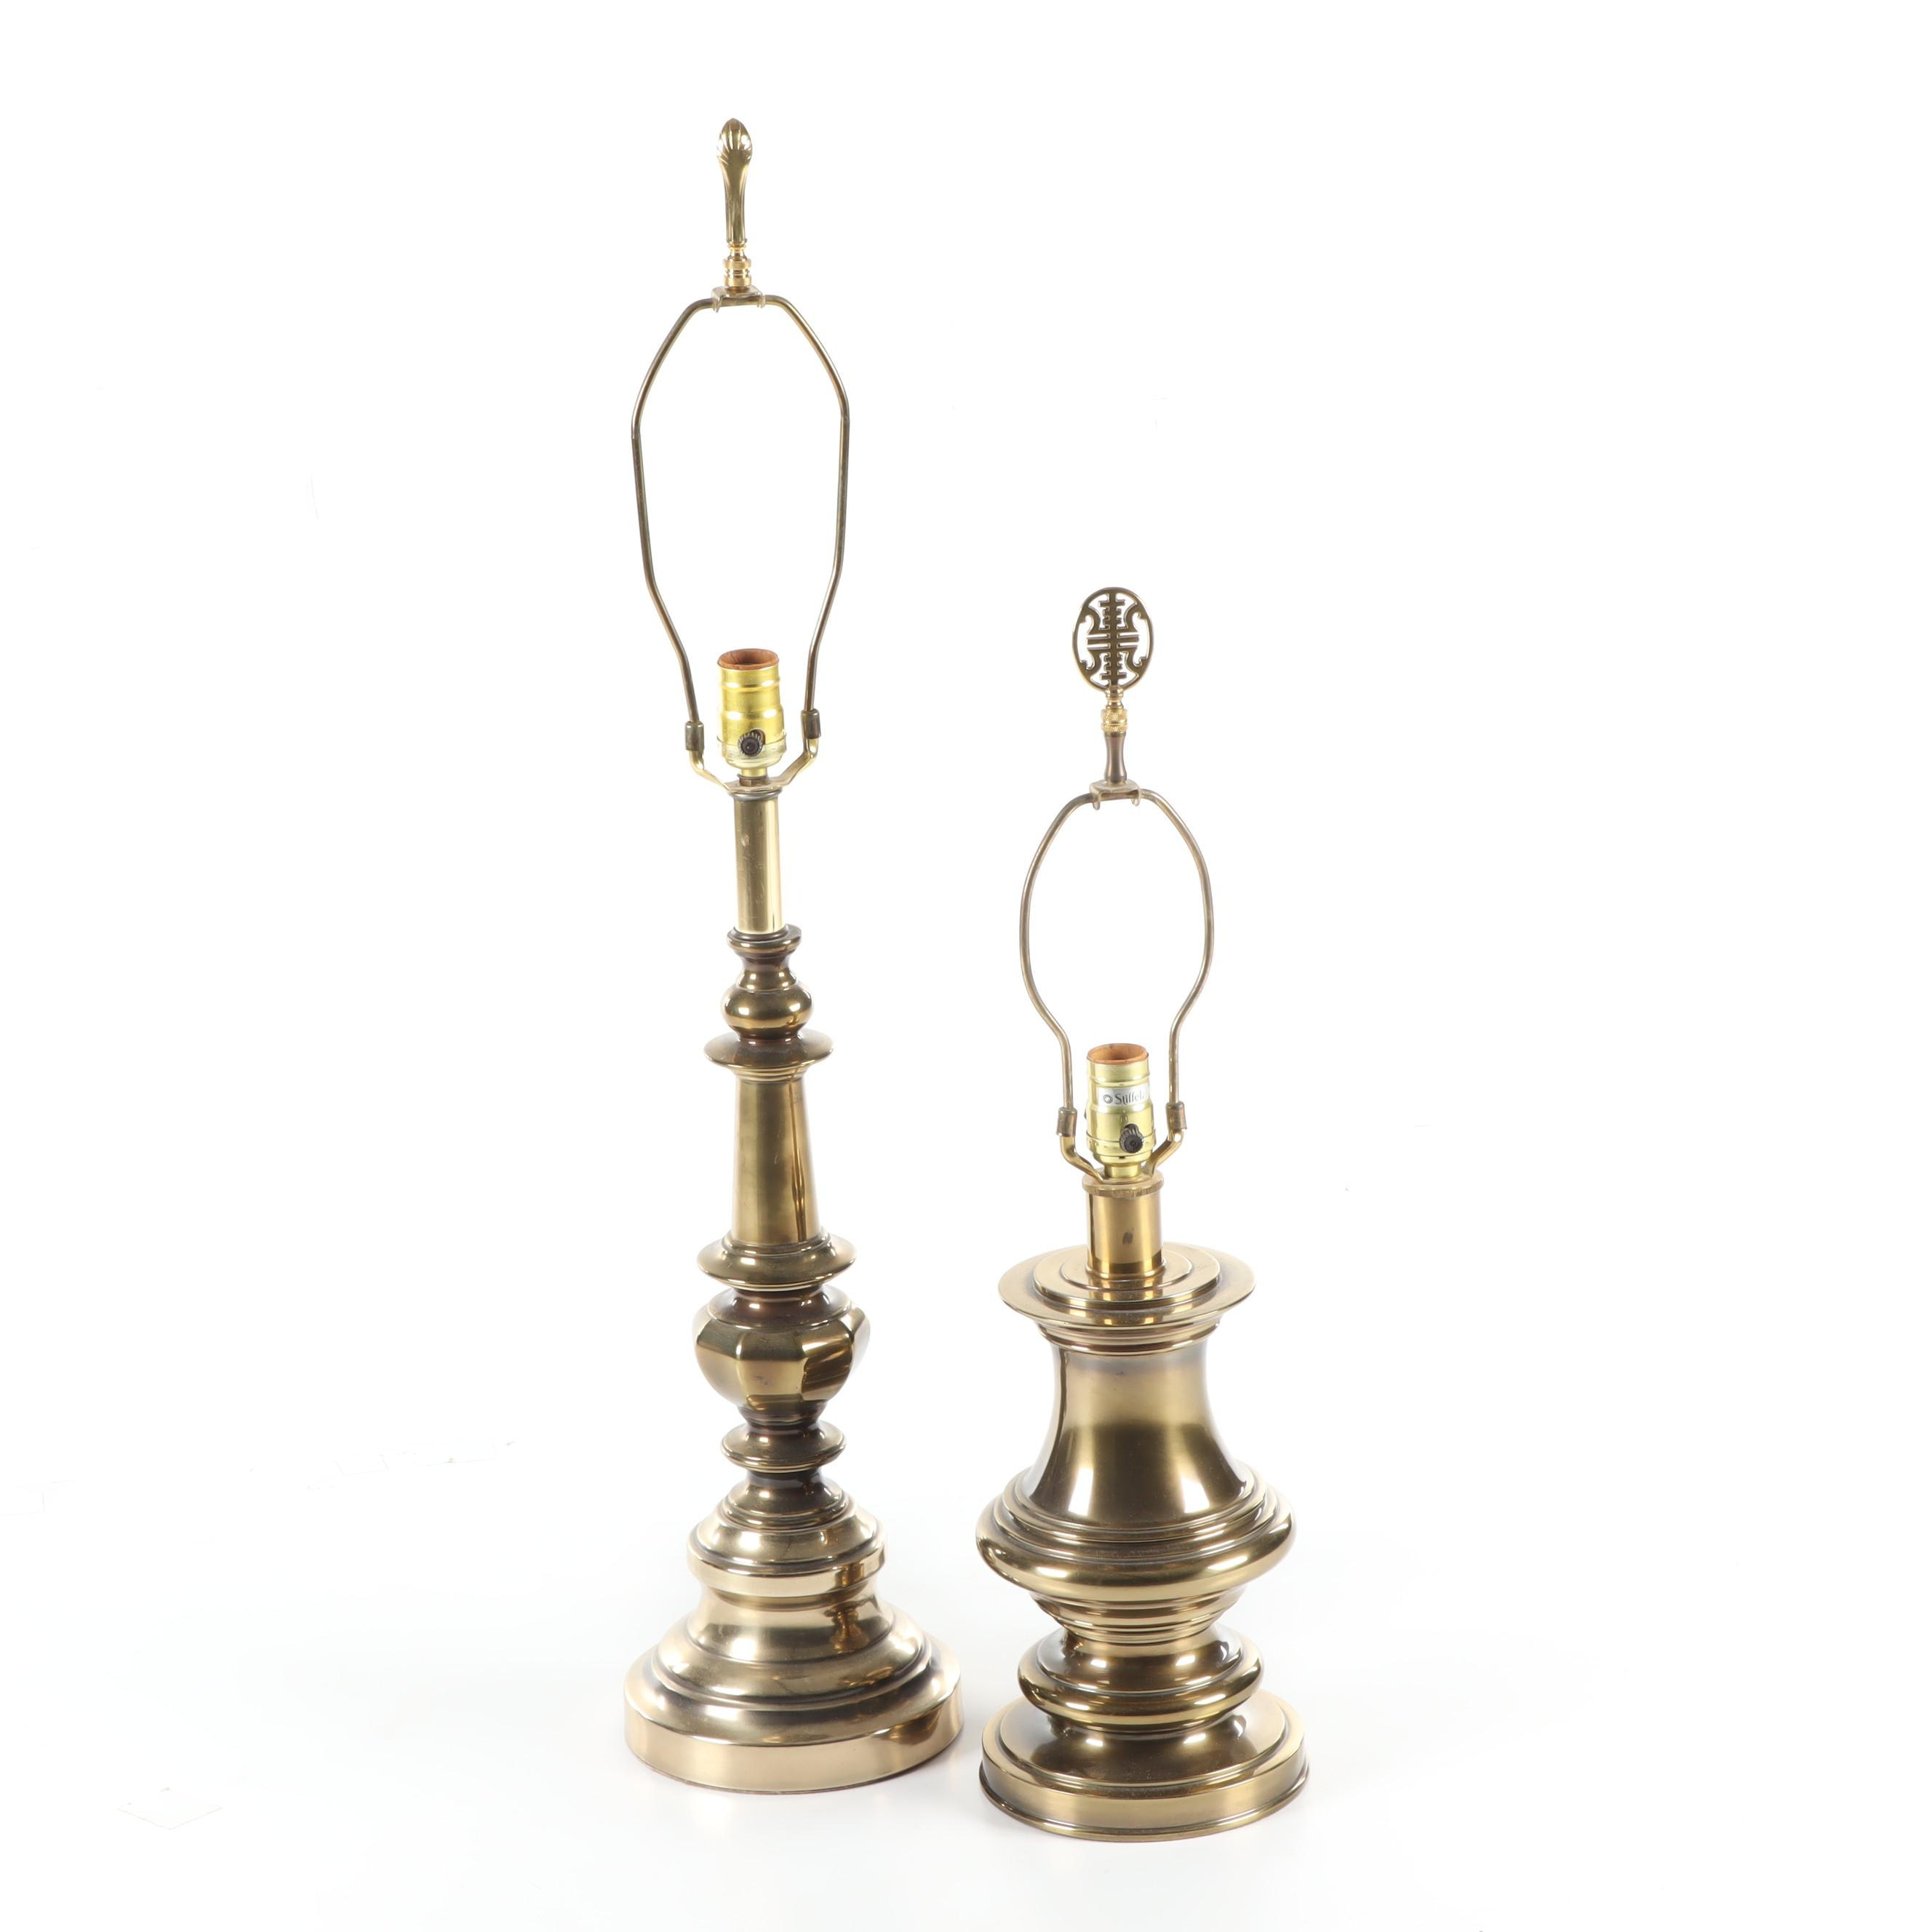 Brass Table Lamps Including Stiffel, Mid to Late 20th Century